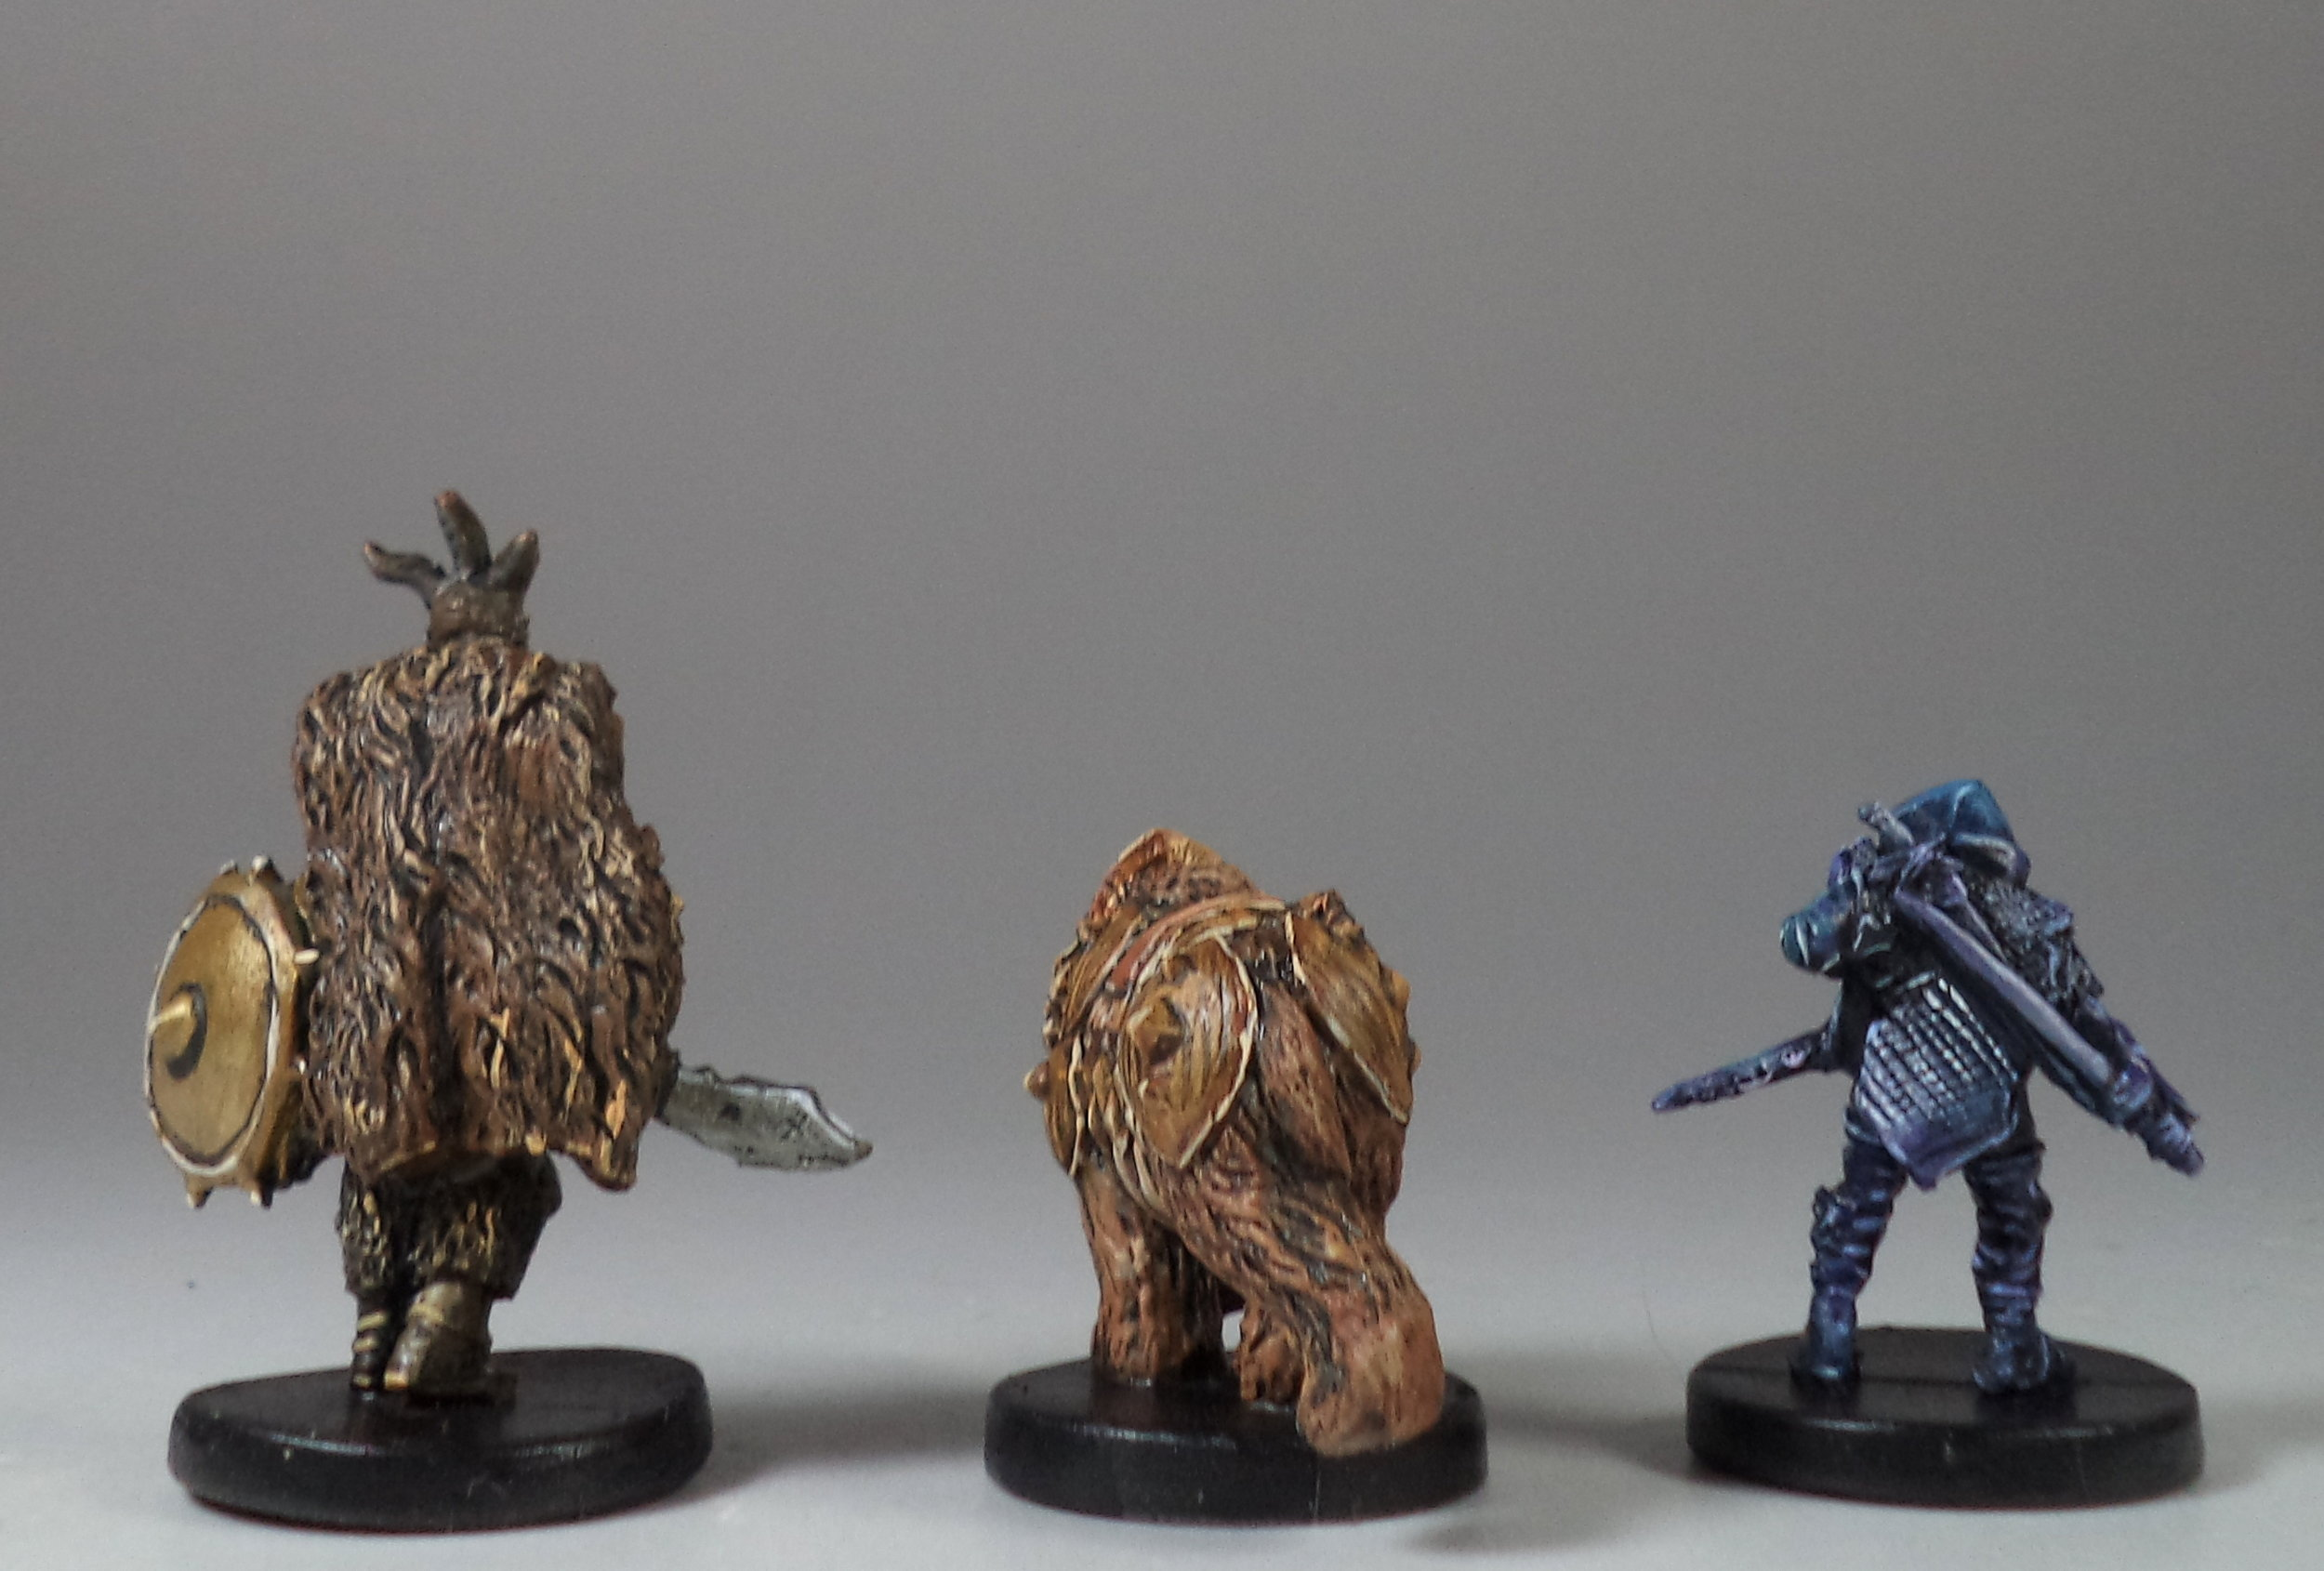 Gloomhaven Painted Gloomhaven Gloomhaven Miniature Painting (8).jpg